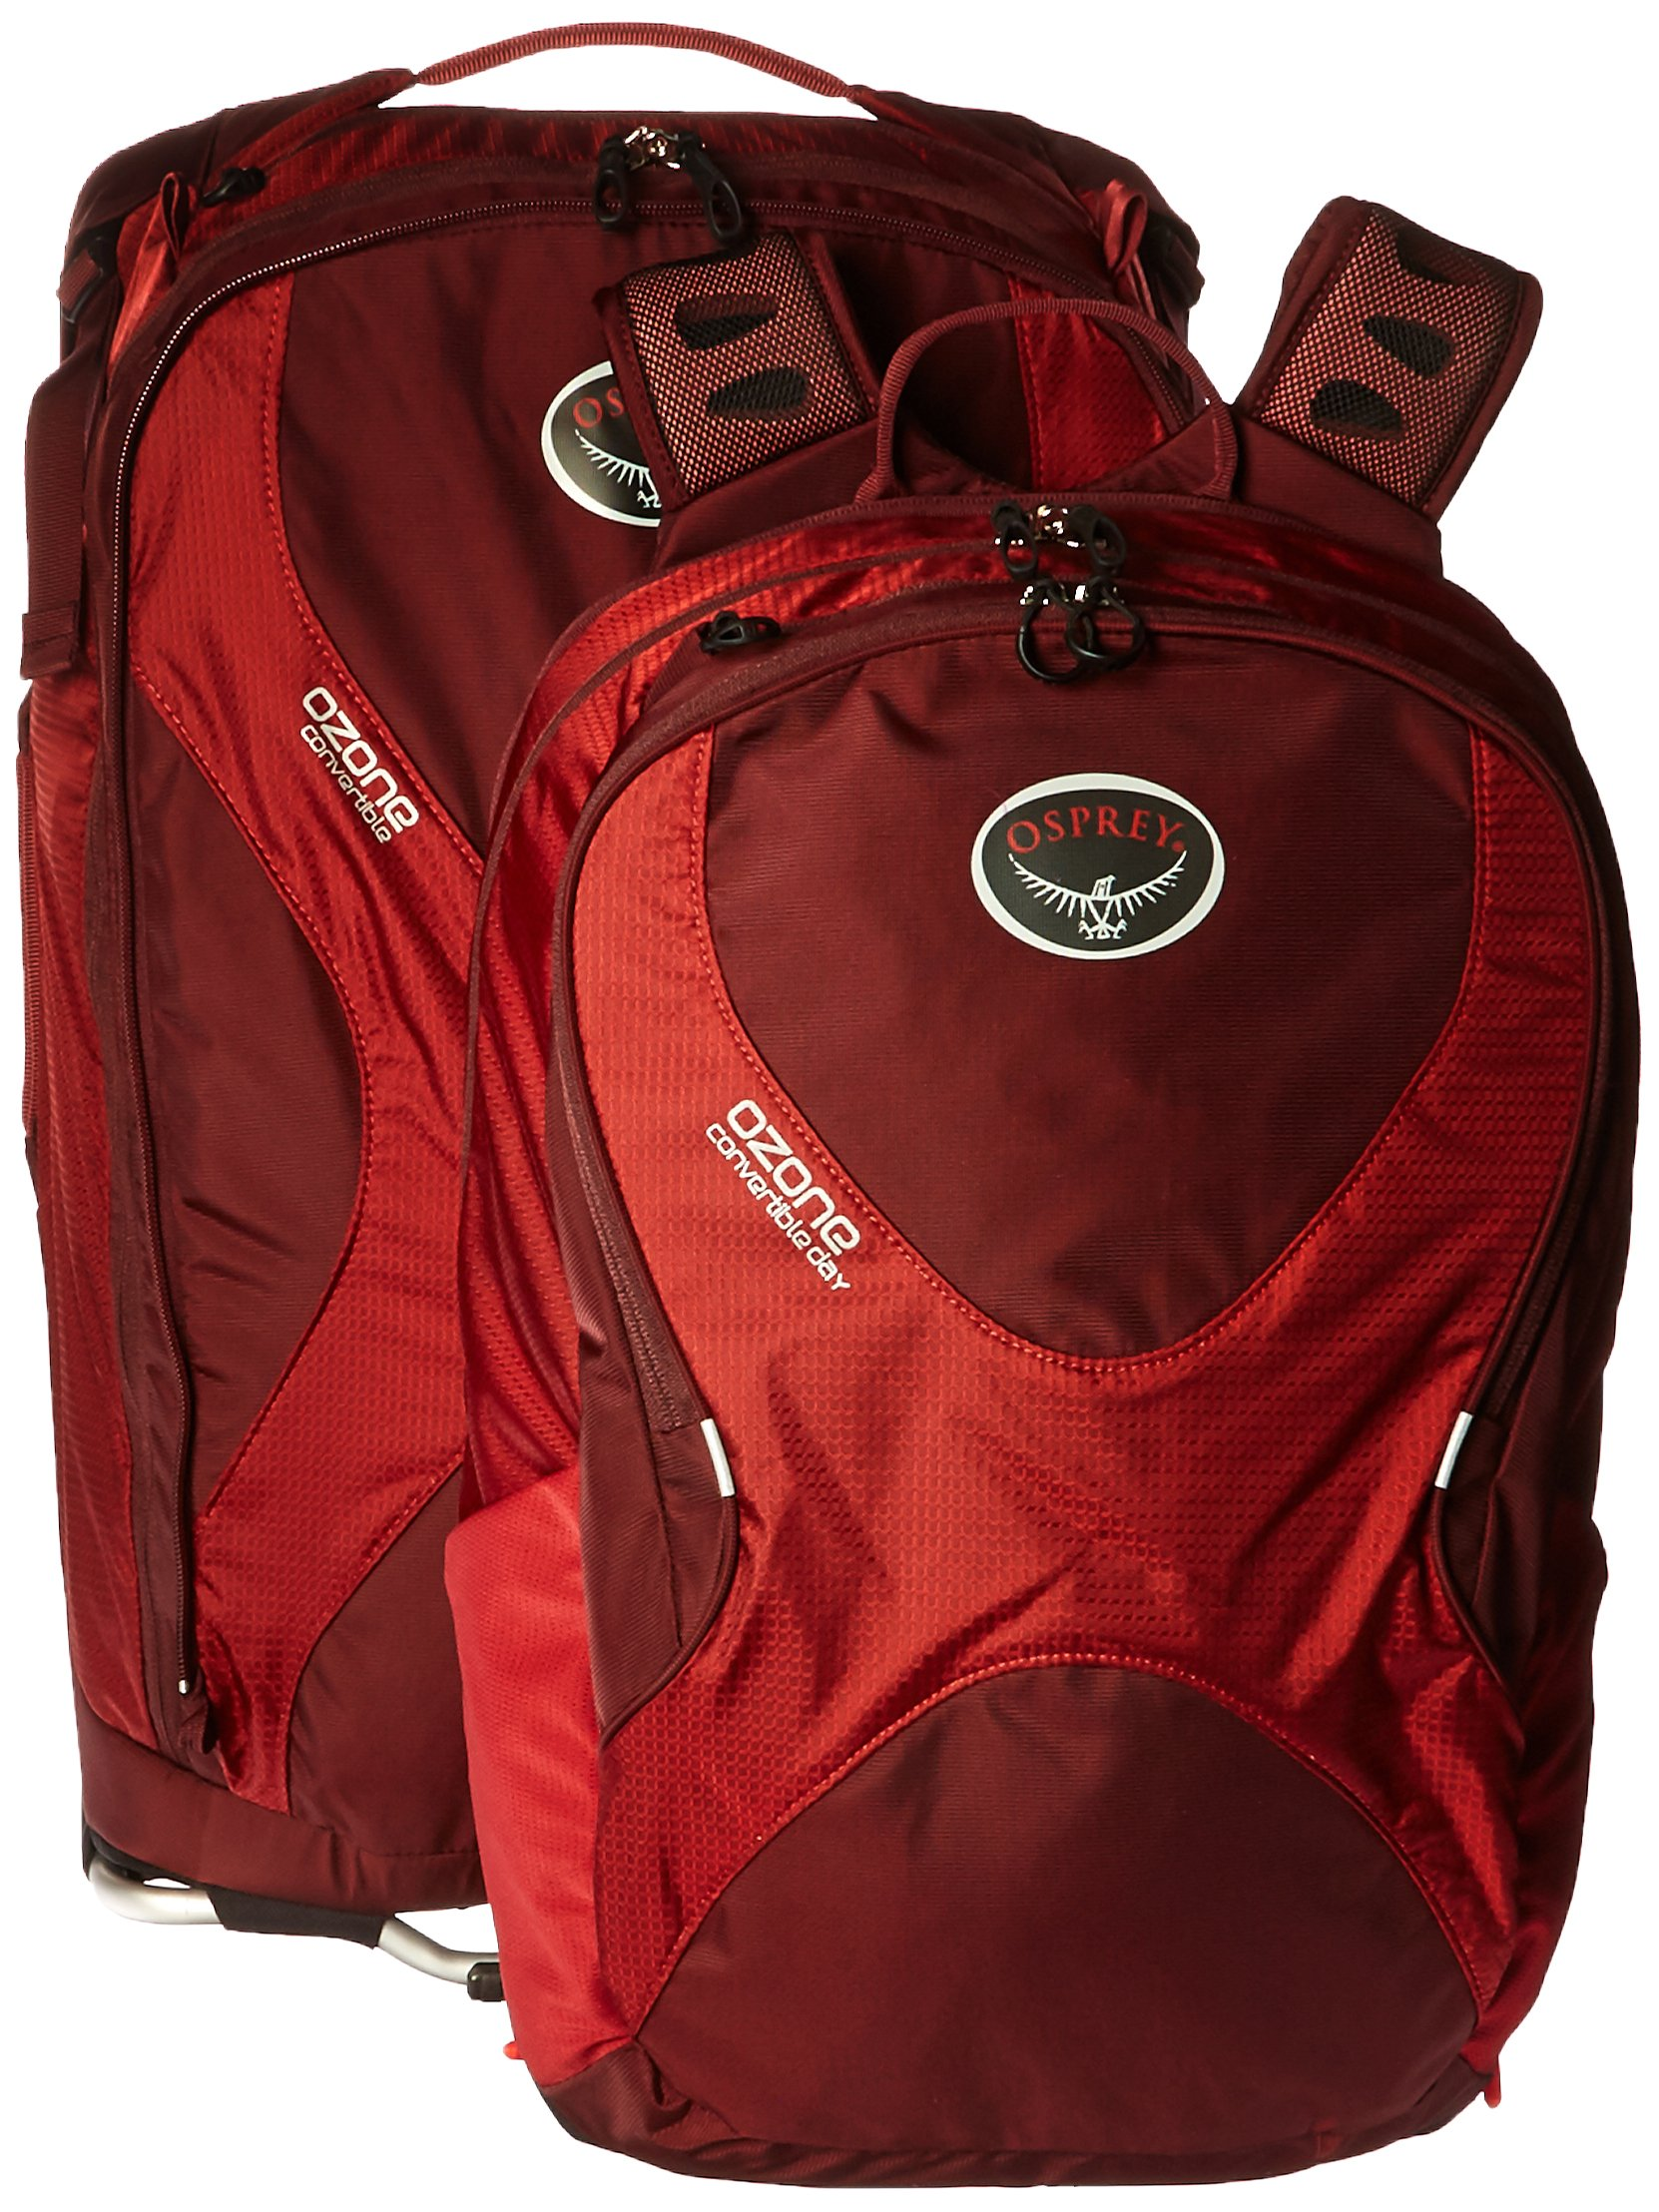 Best Wheeled Backpack for Travel: Osprey Ozone Convertible